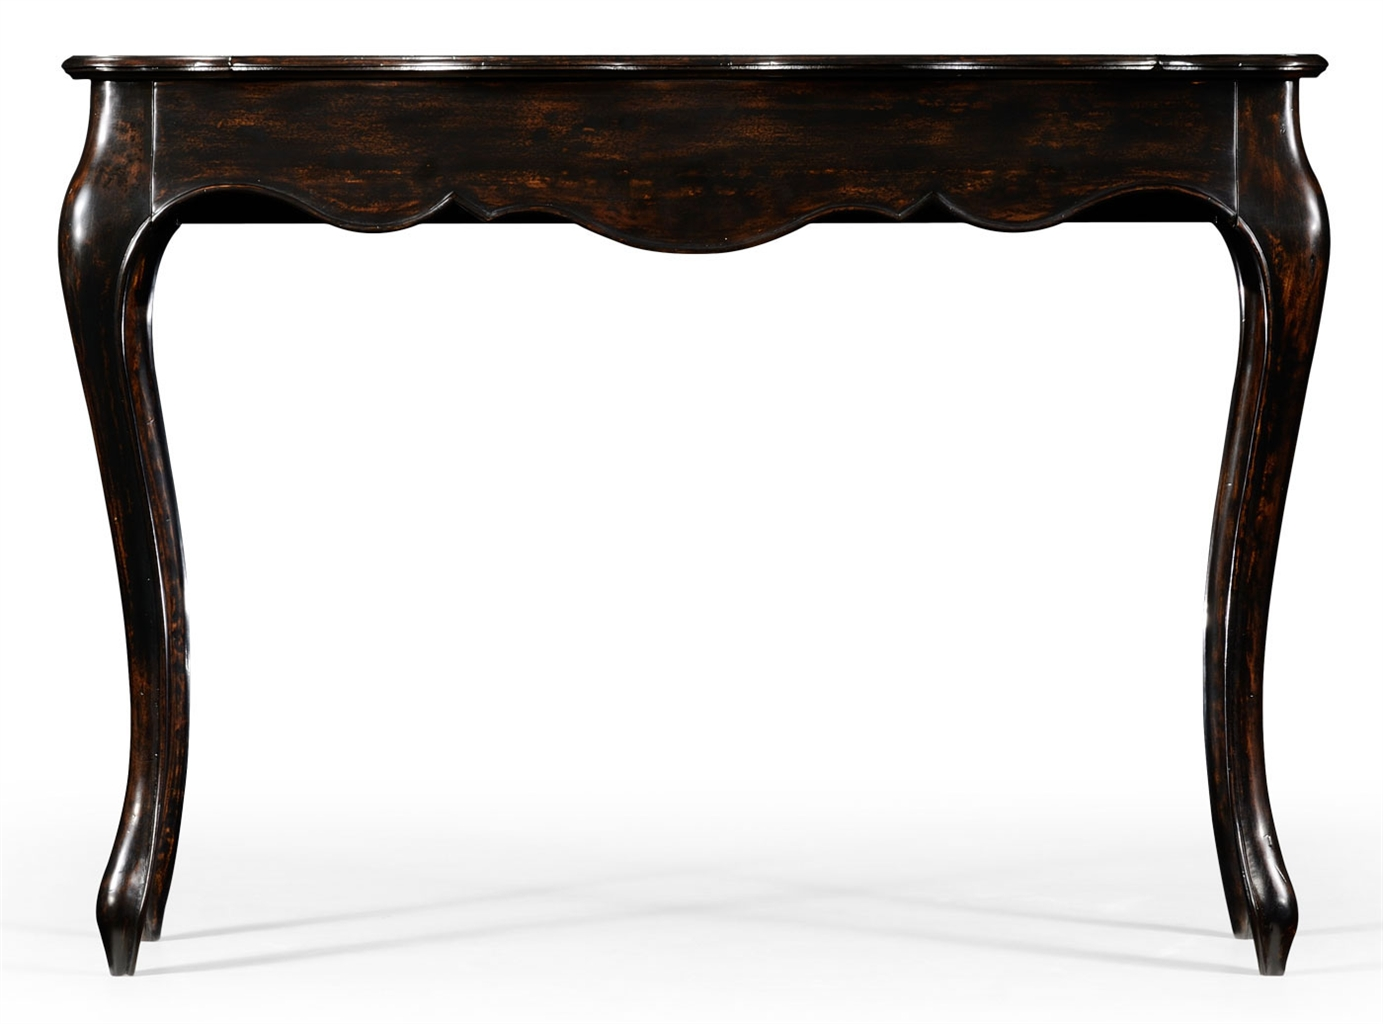 French provincial style distressed black painted console table french provincial style distressed black painted console table 88 geotapseo Gallery